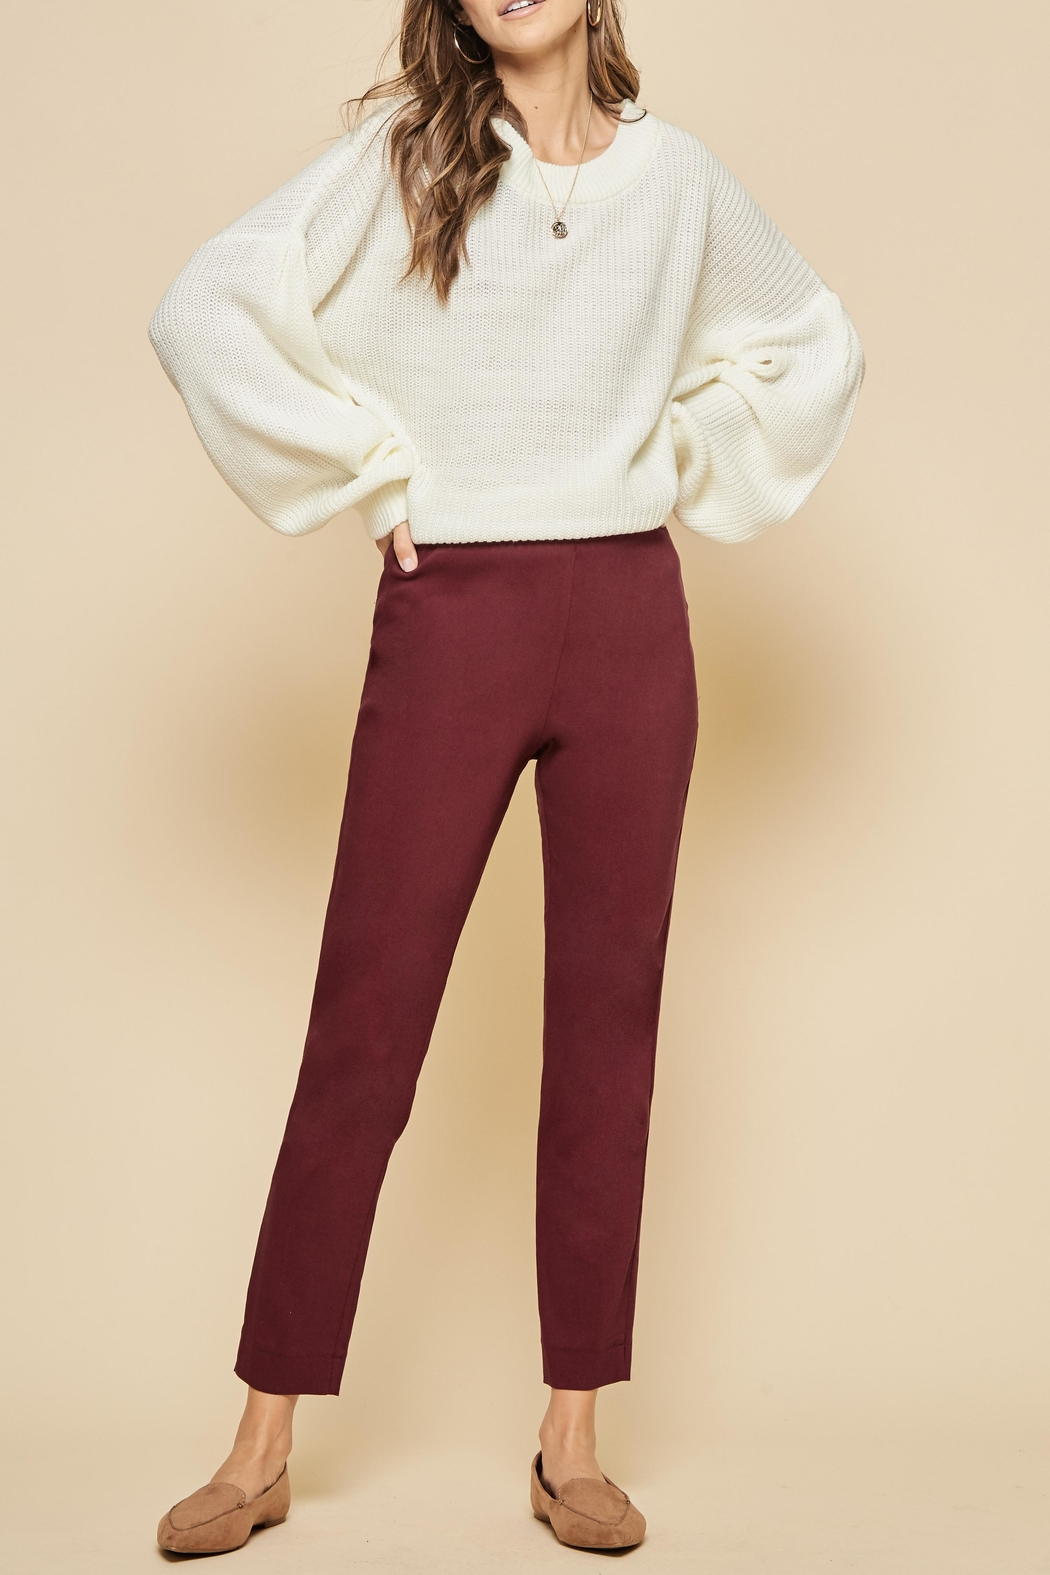 Andree by Unit Stretch Cotton Leggings - Main Image